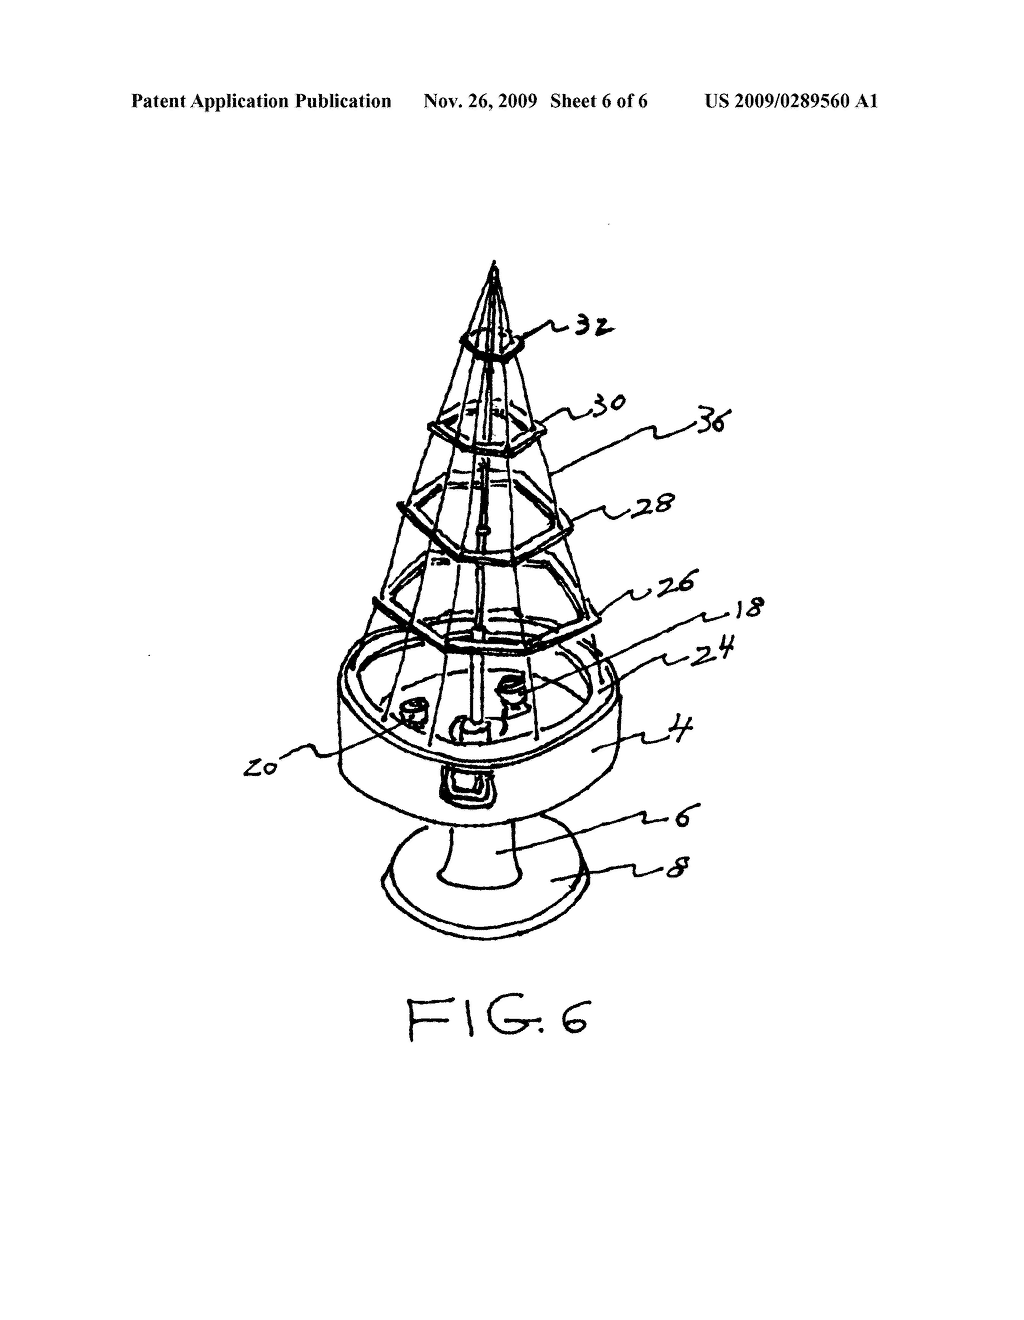 pop up christmas tree diagram schematic and image 07 rh patentsencyclopedia com origami christmas tree diagram xmas tree diagram